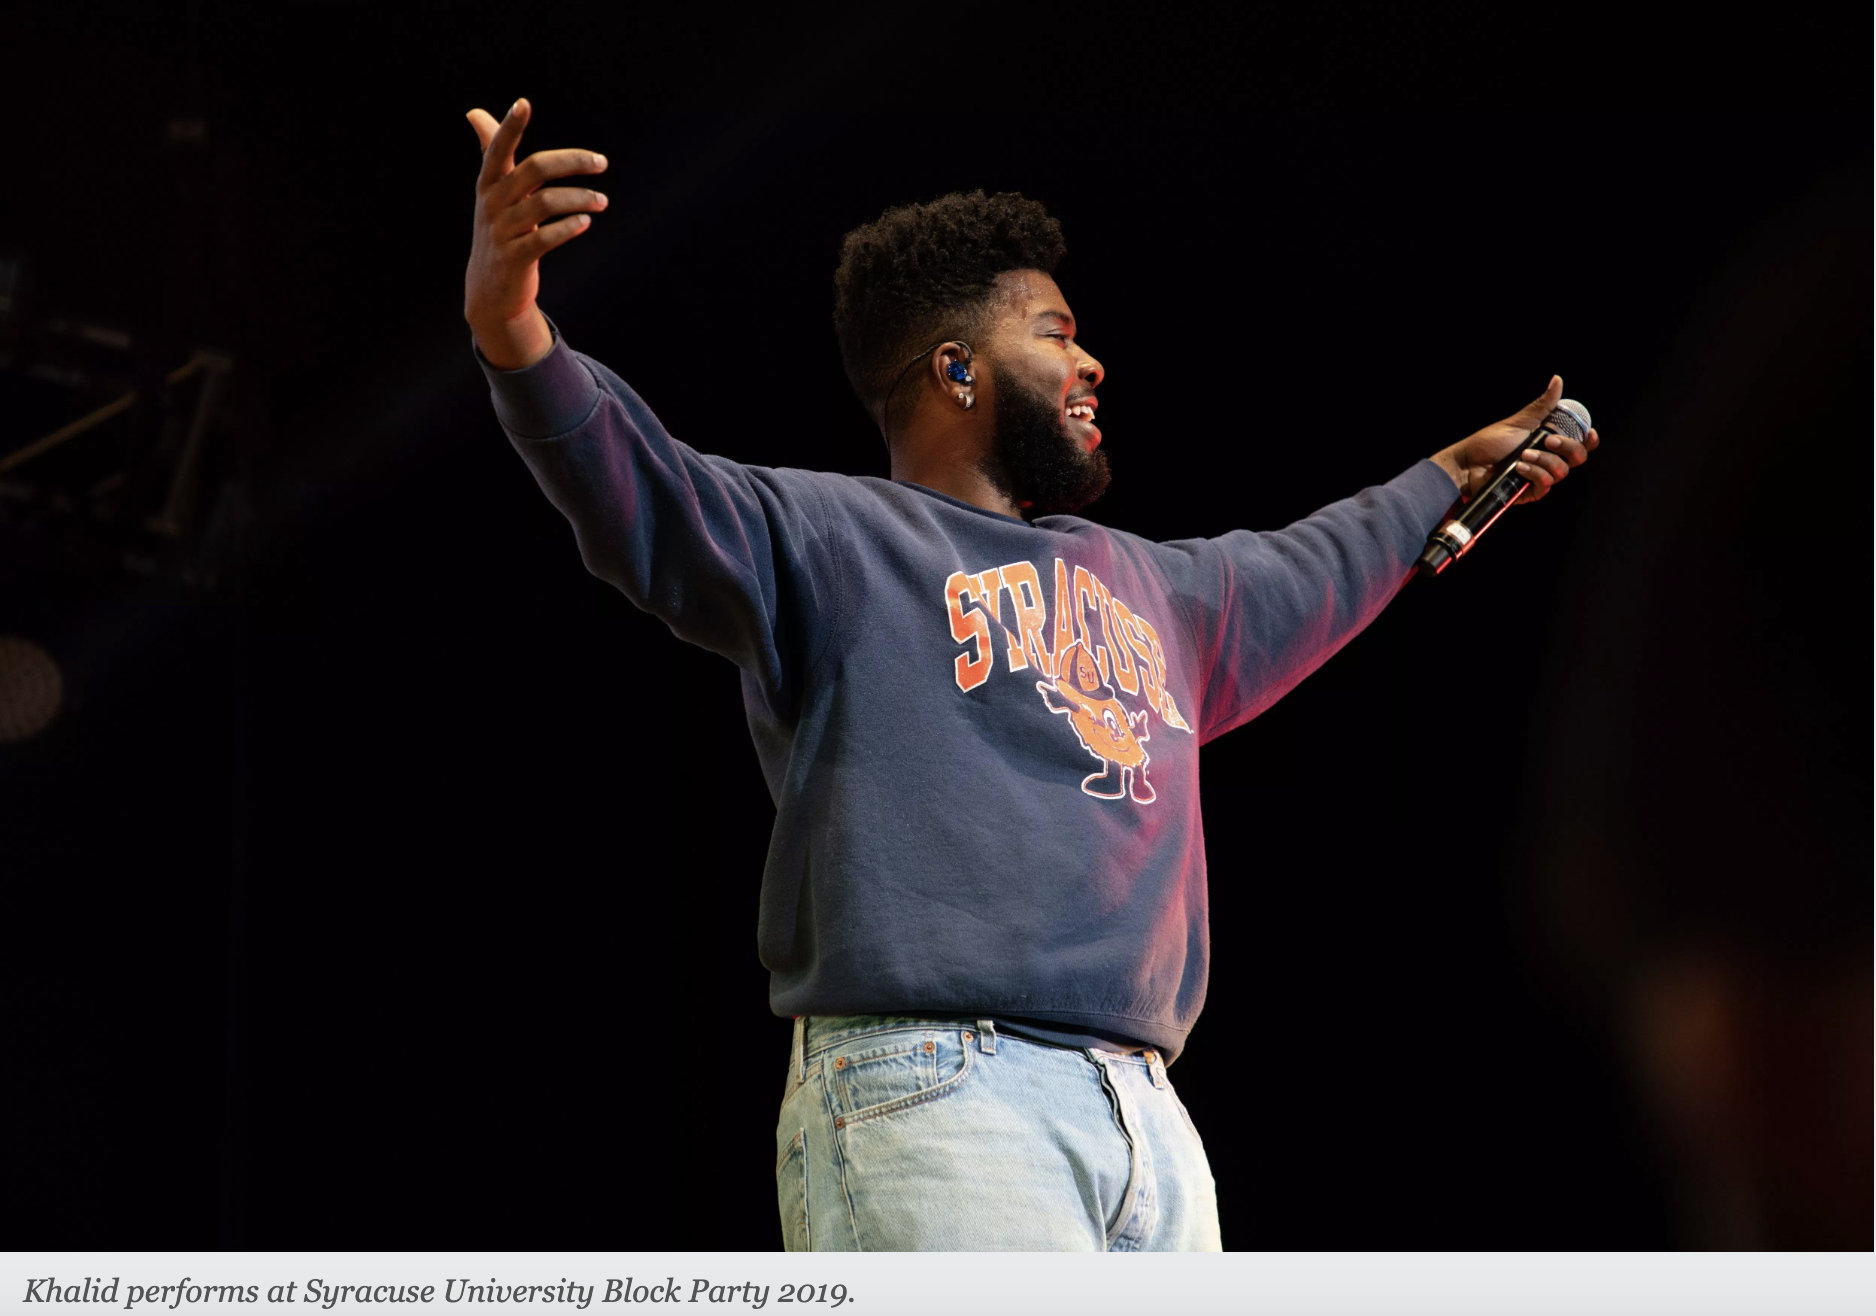 Khalid brings 'free spirit' to Block Party - I played a part producing this review as editor for Khalid's 2019 block party performance by Patrick Henkels. The R&B singer came and stirred the college crowd with heartfelt vocals and recent hits.